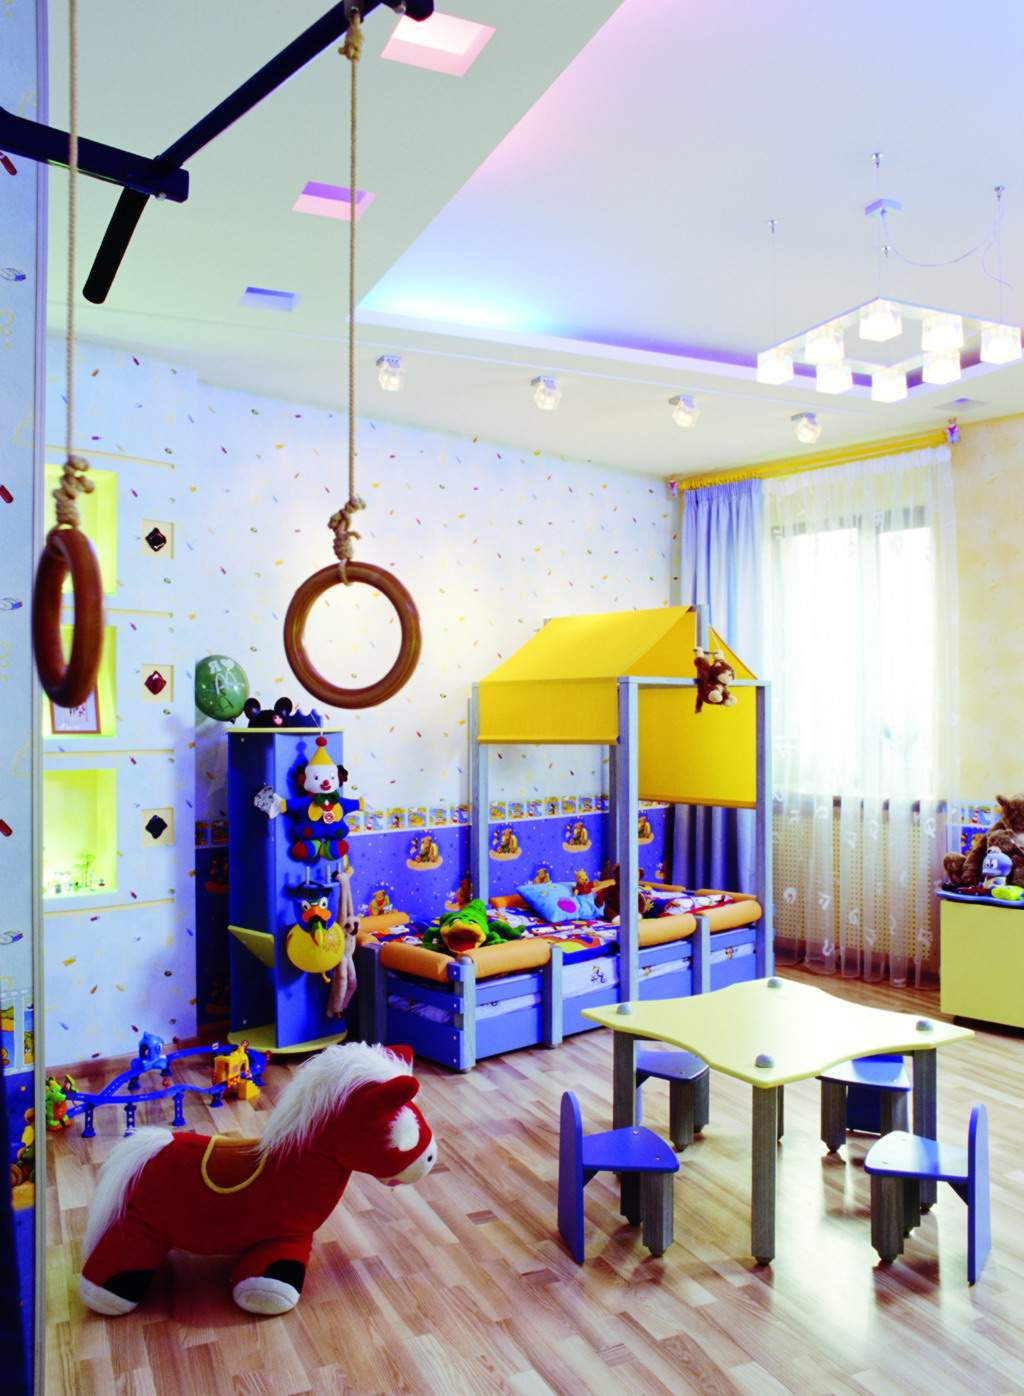 15 creative kids bedroom decorating ideas for Room decor for kids